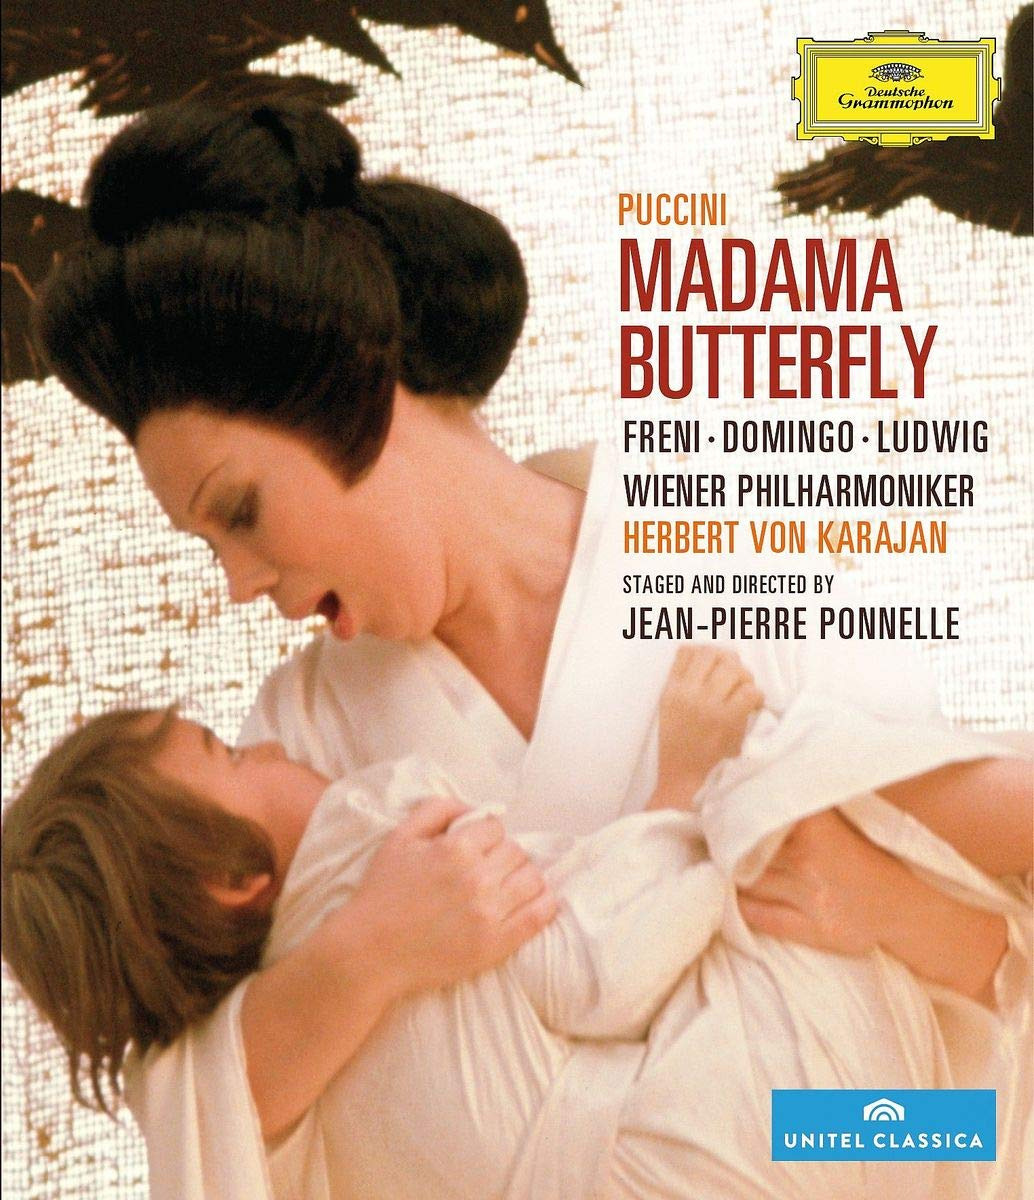 Amazon.com: Puccini: Madama Butterfly [Blu-ray]: Mirella Freni ...